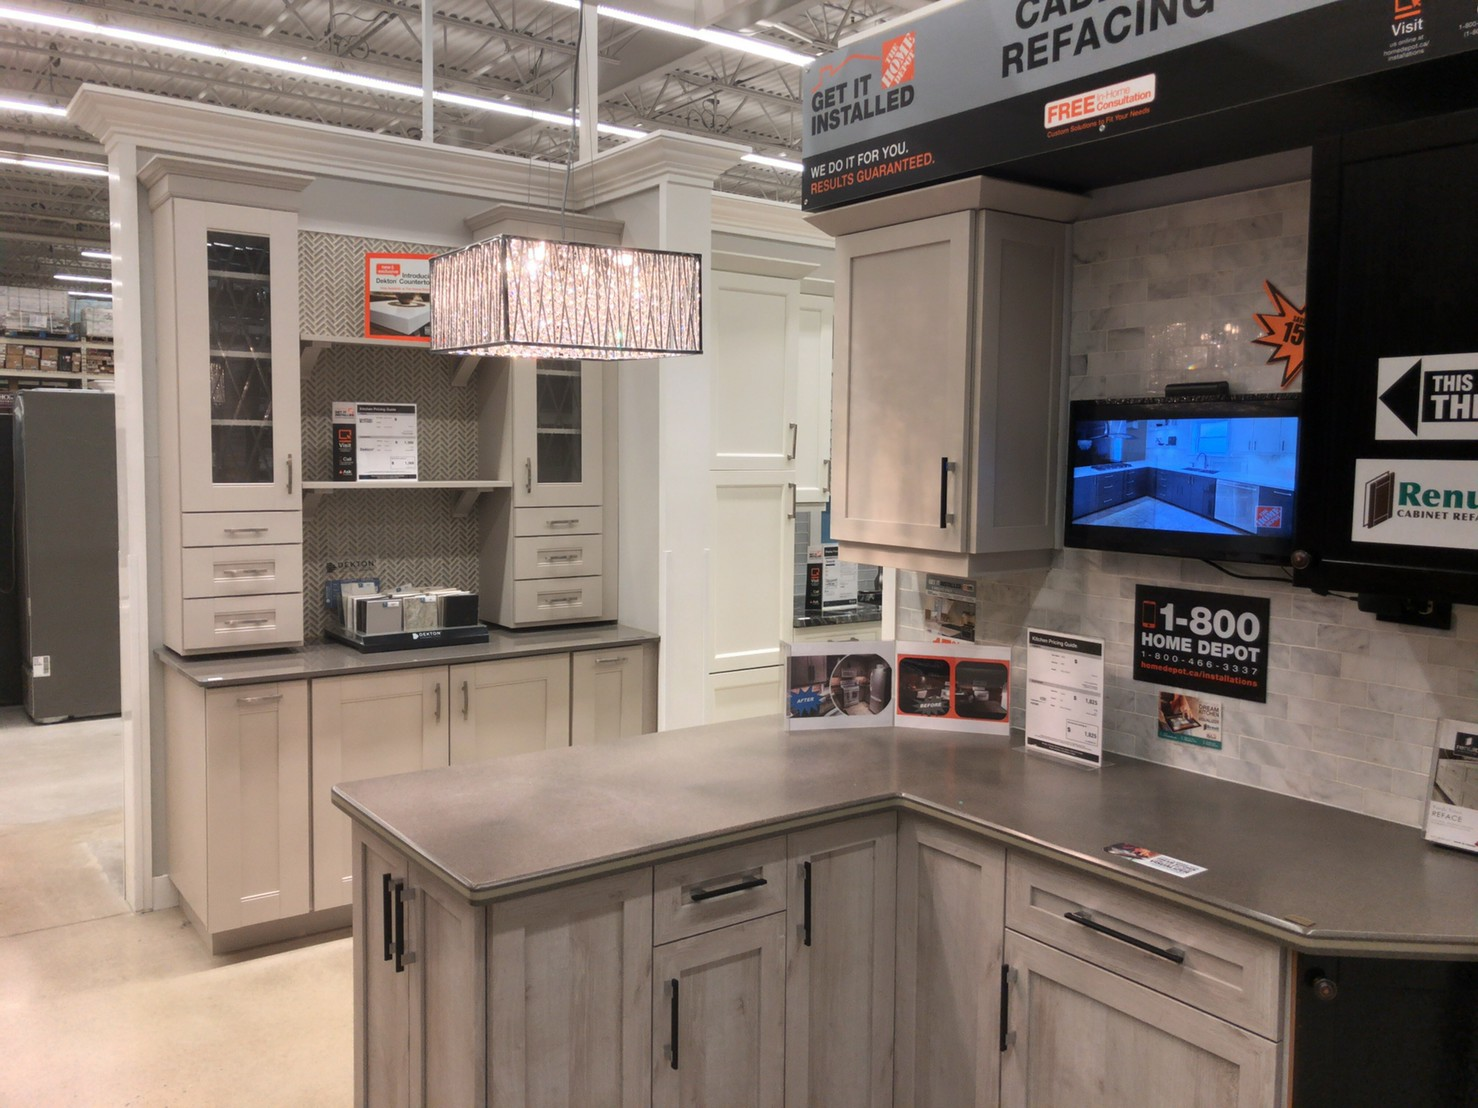 The home depot Kitchen ①